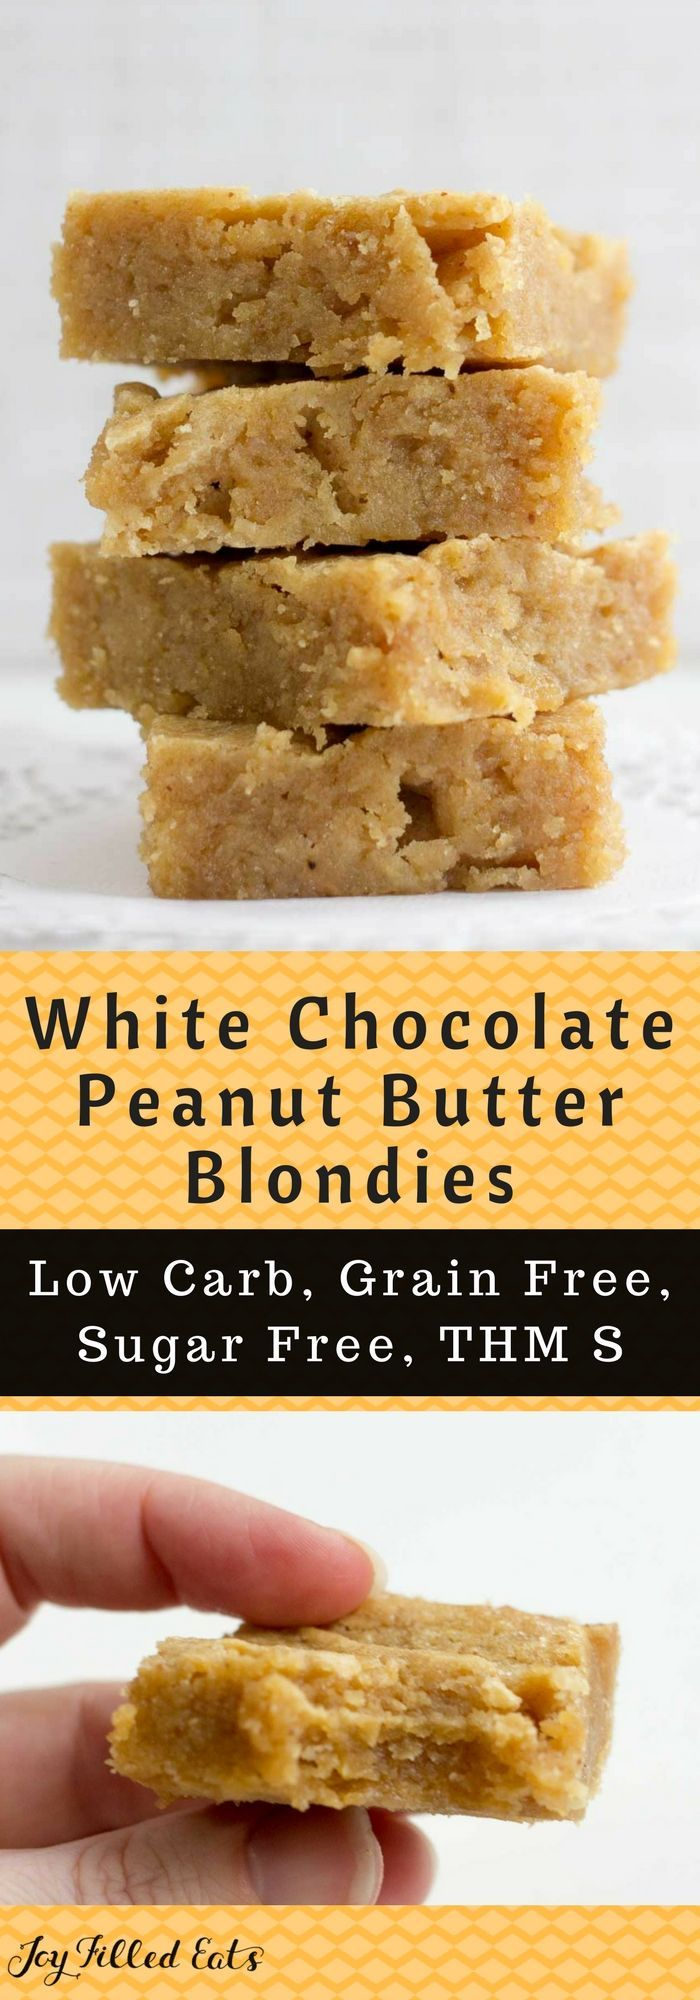 White Chocolate Peanut Butter Blondies - Low Carb, Grain & Sugar Free, THM S via @joyfilledeats